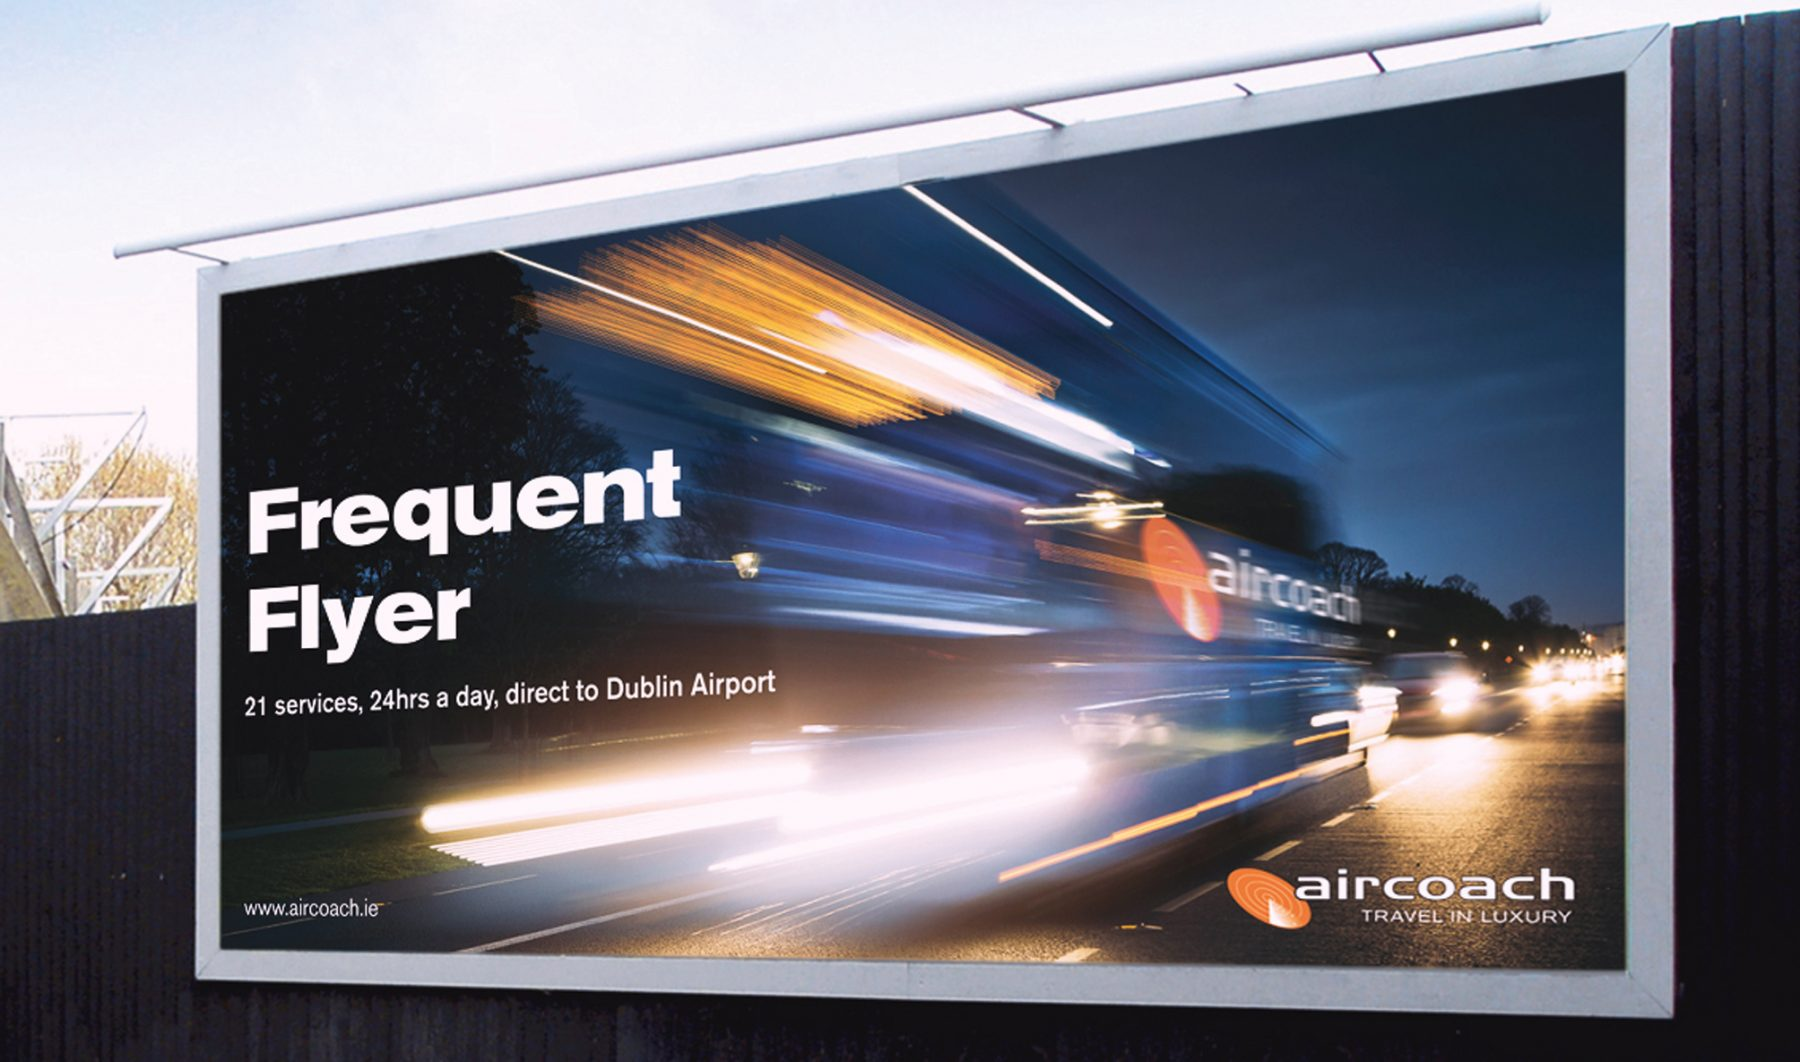 Marketing Network - Aircoach Frequent Flyer